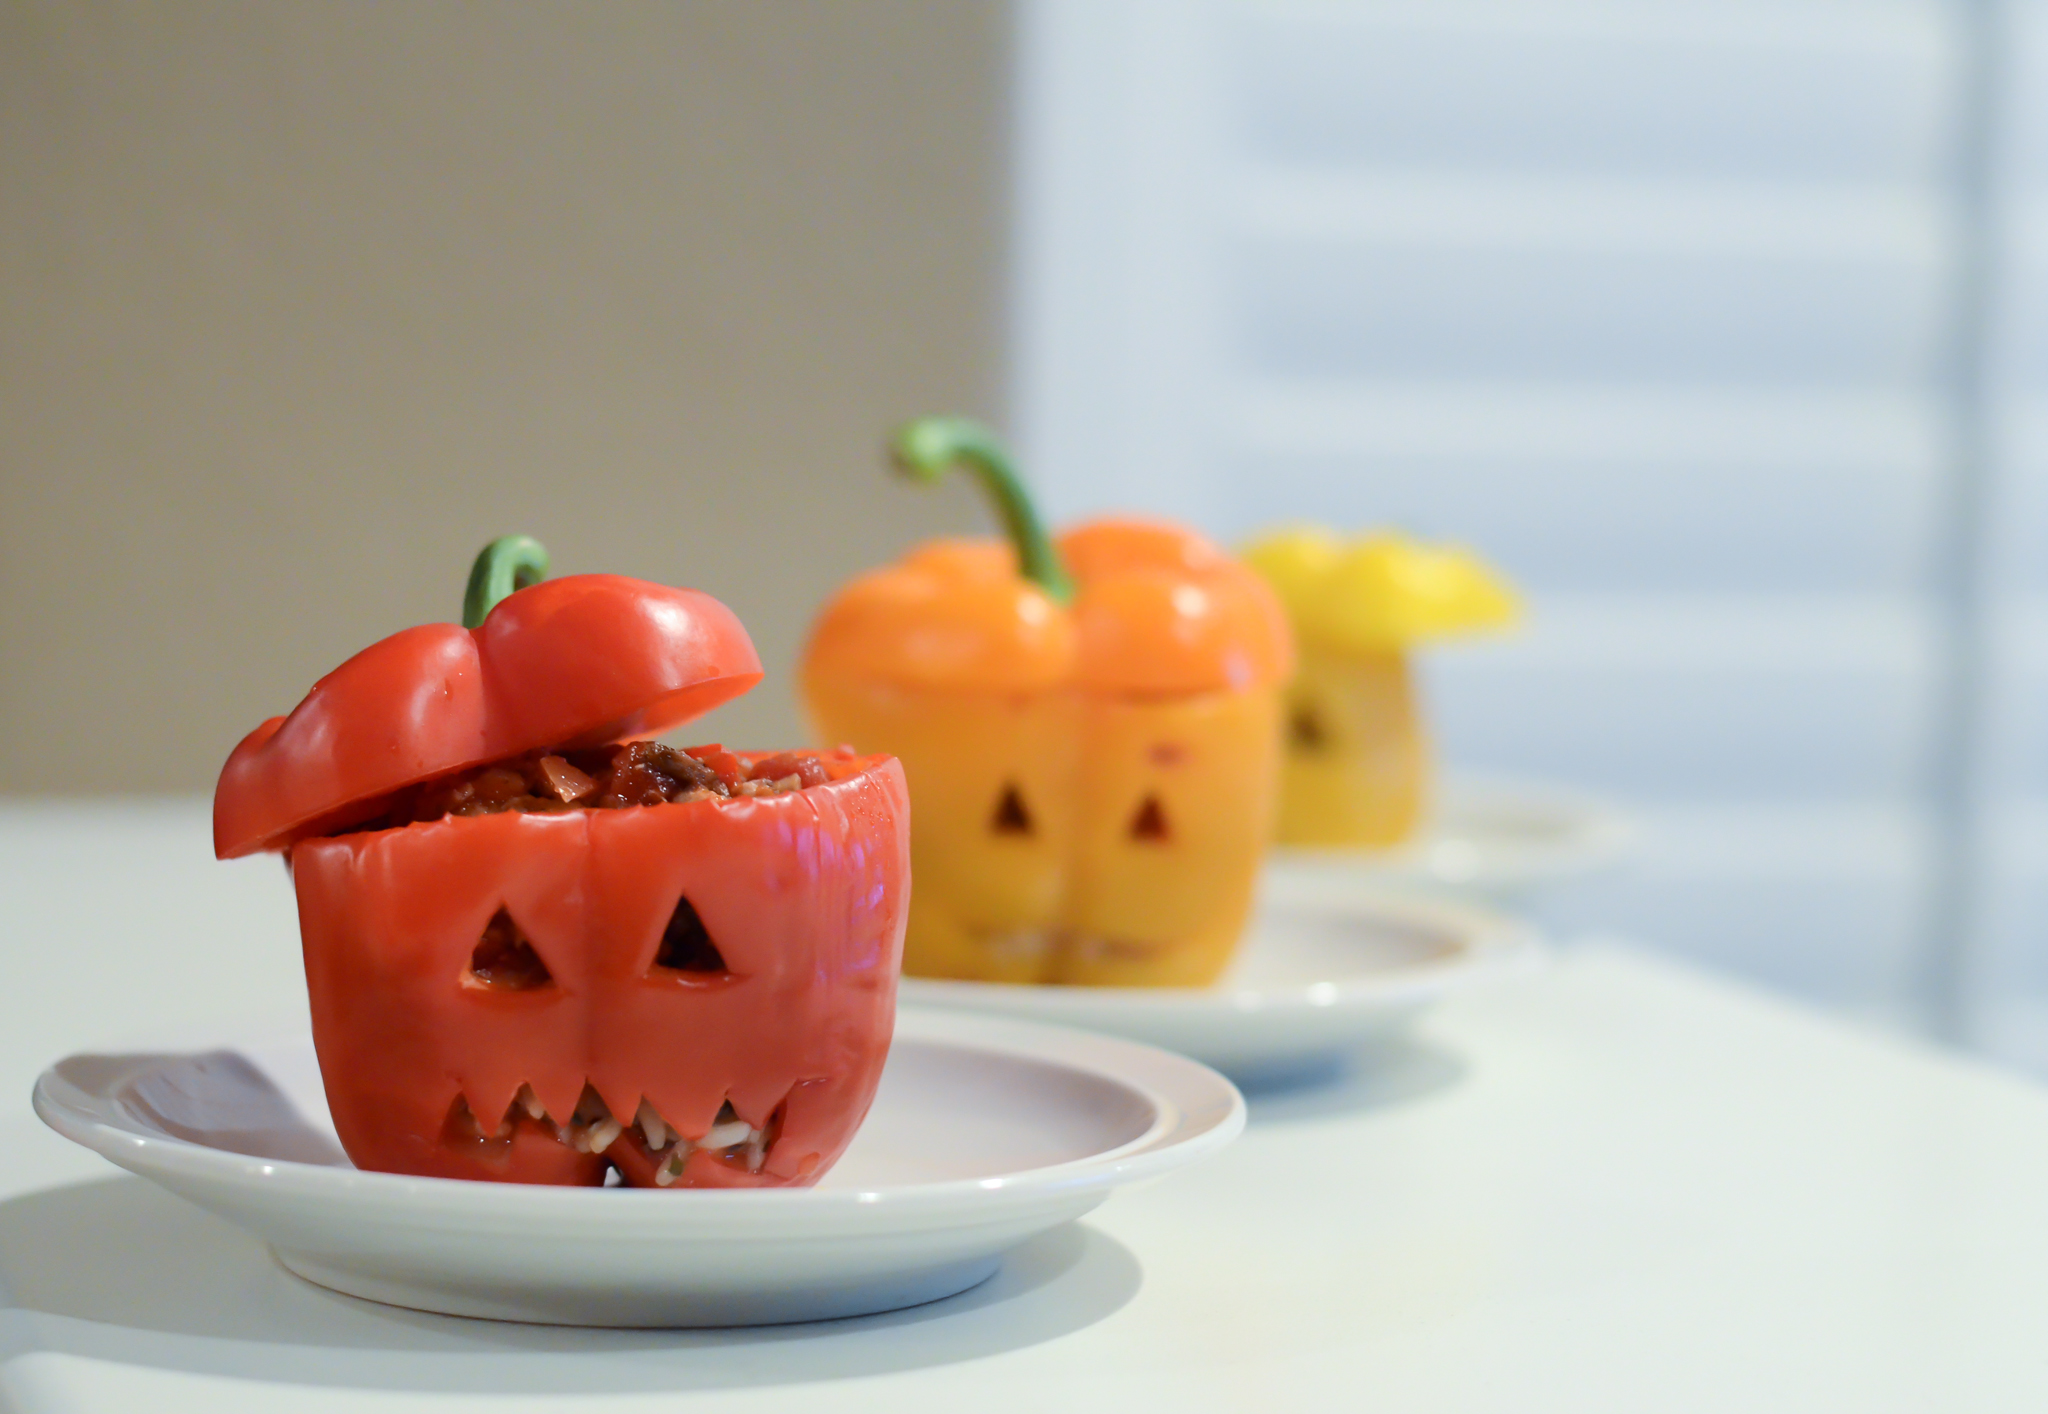 Pumpkin Stuffed Peppers - INGREDIENTS:- 4 medium orange bell peppers- 1 package (8.8 oz) microwavable Spanish style rice- 1 lb ground turkey- 1/2 cup chopped mushrooms &onions (from 8 oz container)- 1 can (8 oz) roasted garlic tomato sauce- 1/4 teaspoon freshly ground pepper